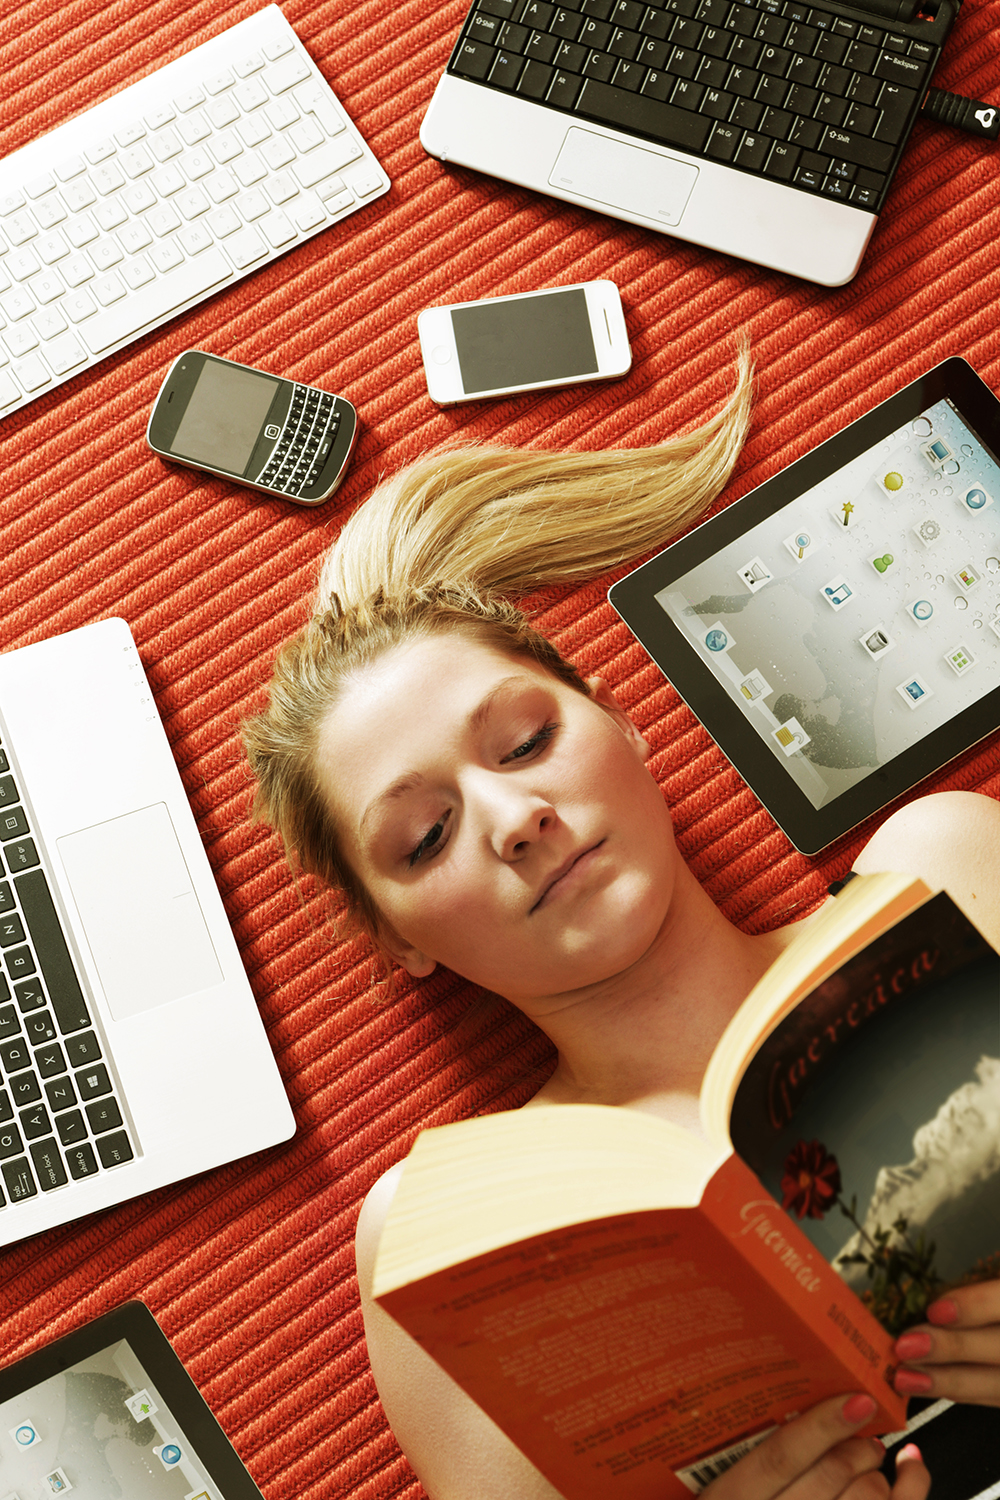 Woman reading book surrounded by technology